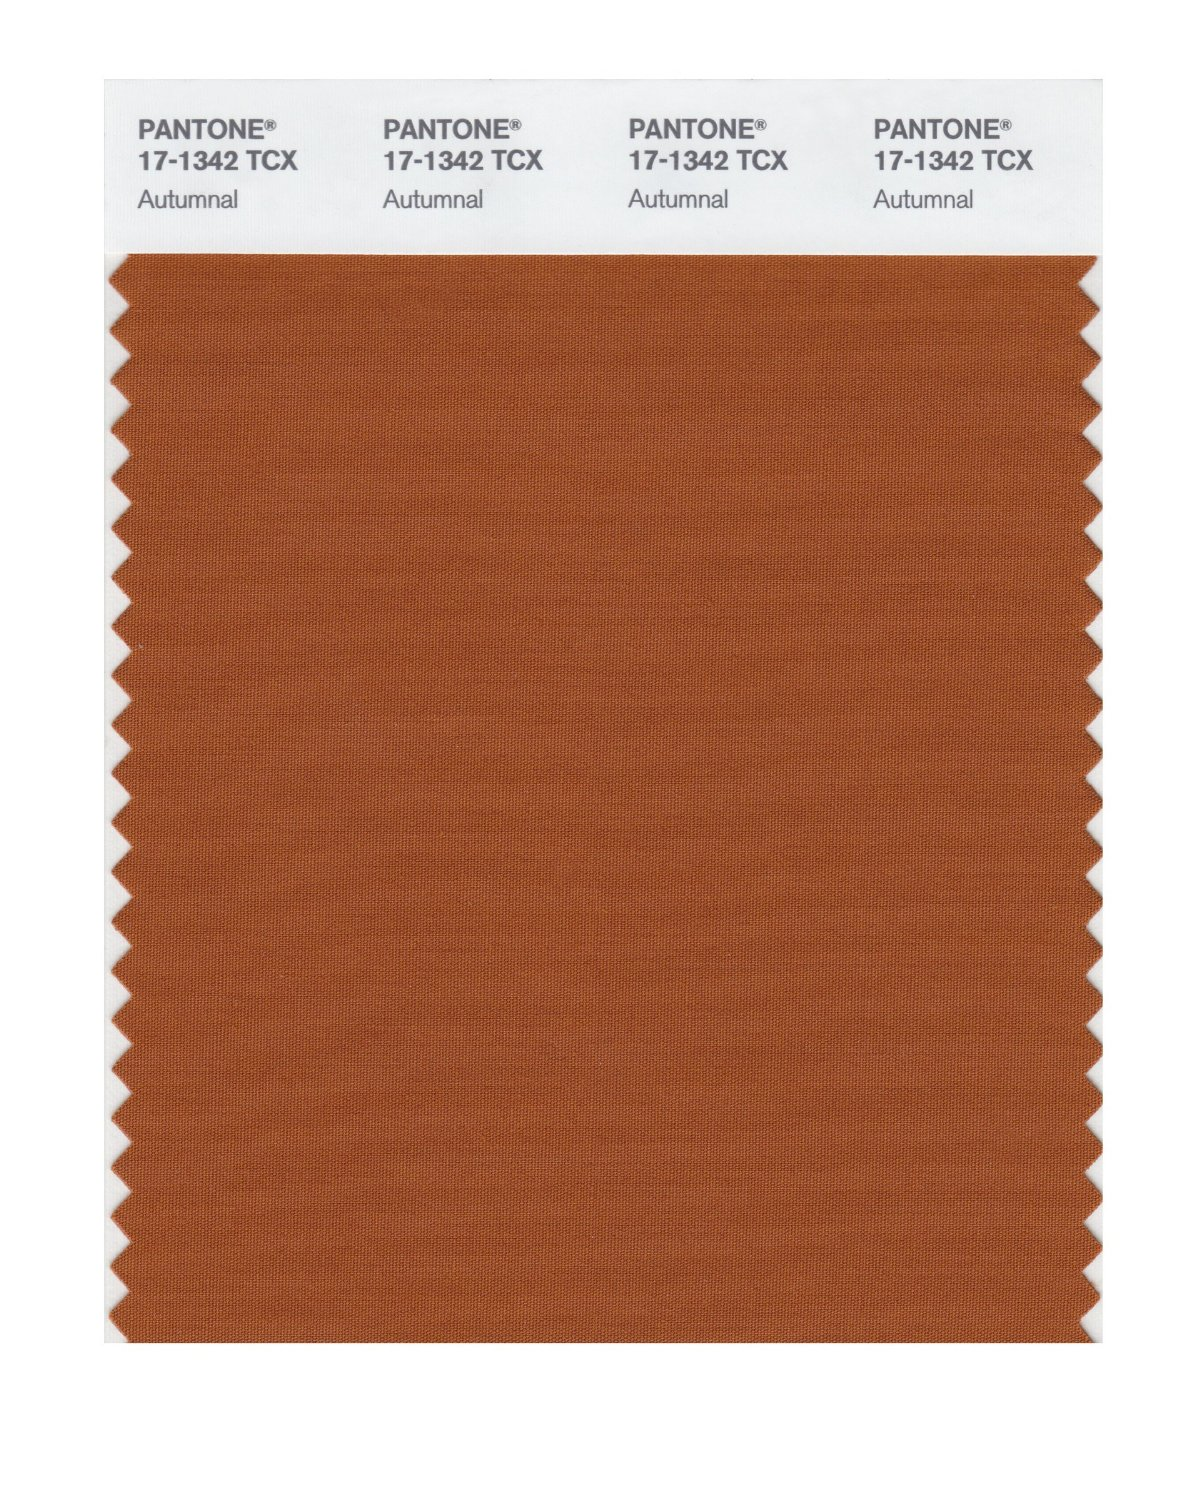 Pantone Smart Swatch 17-1342 Autumnal